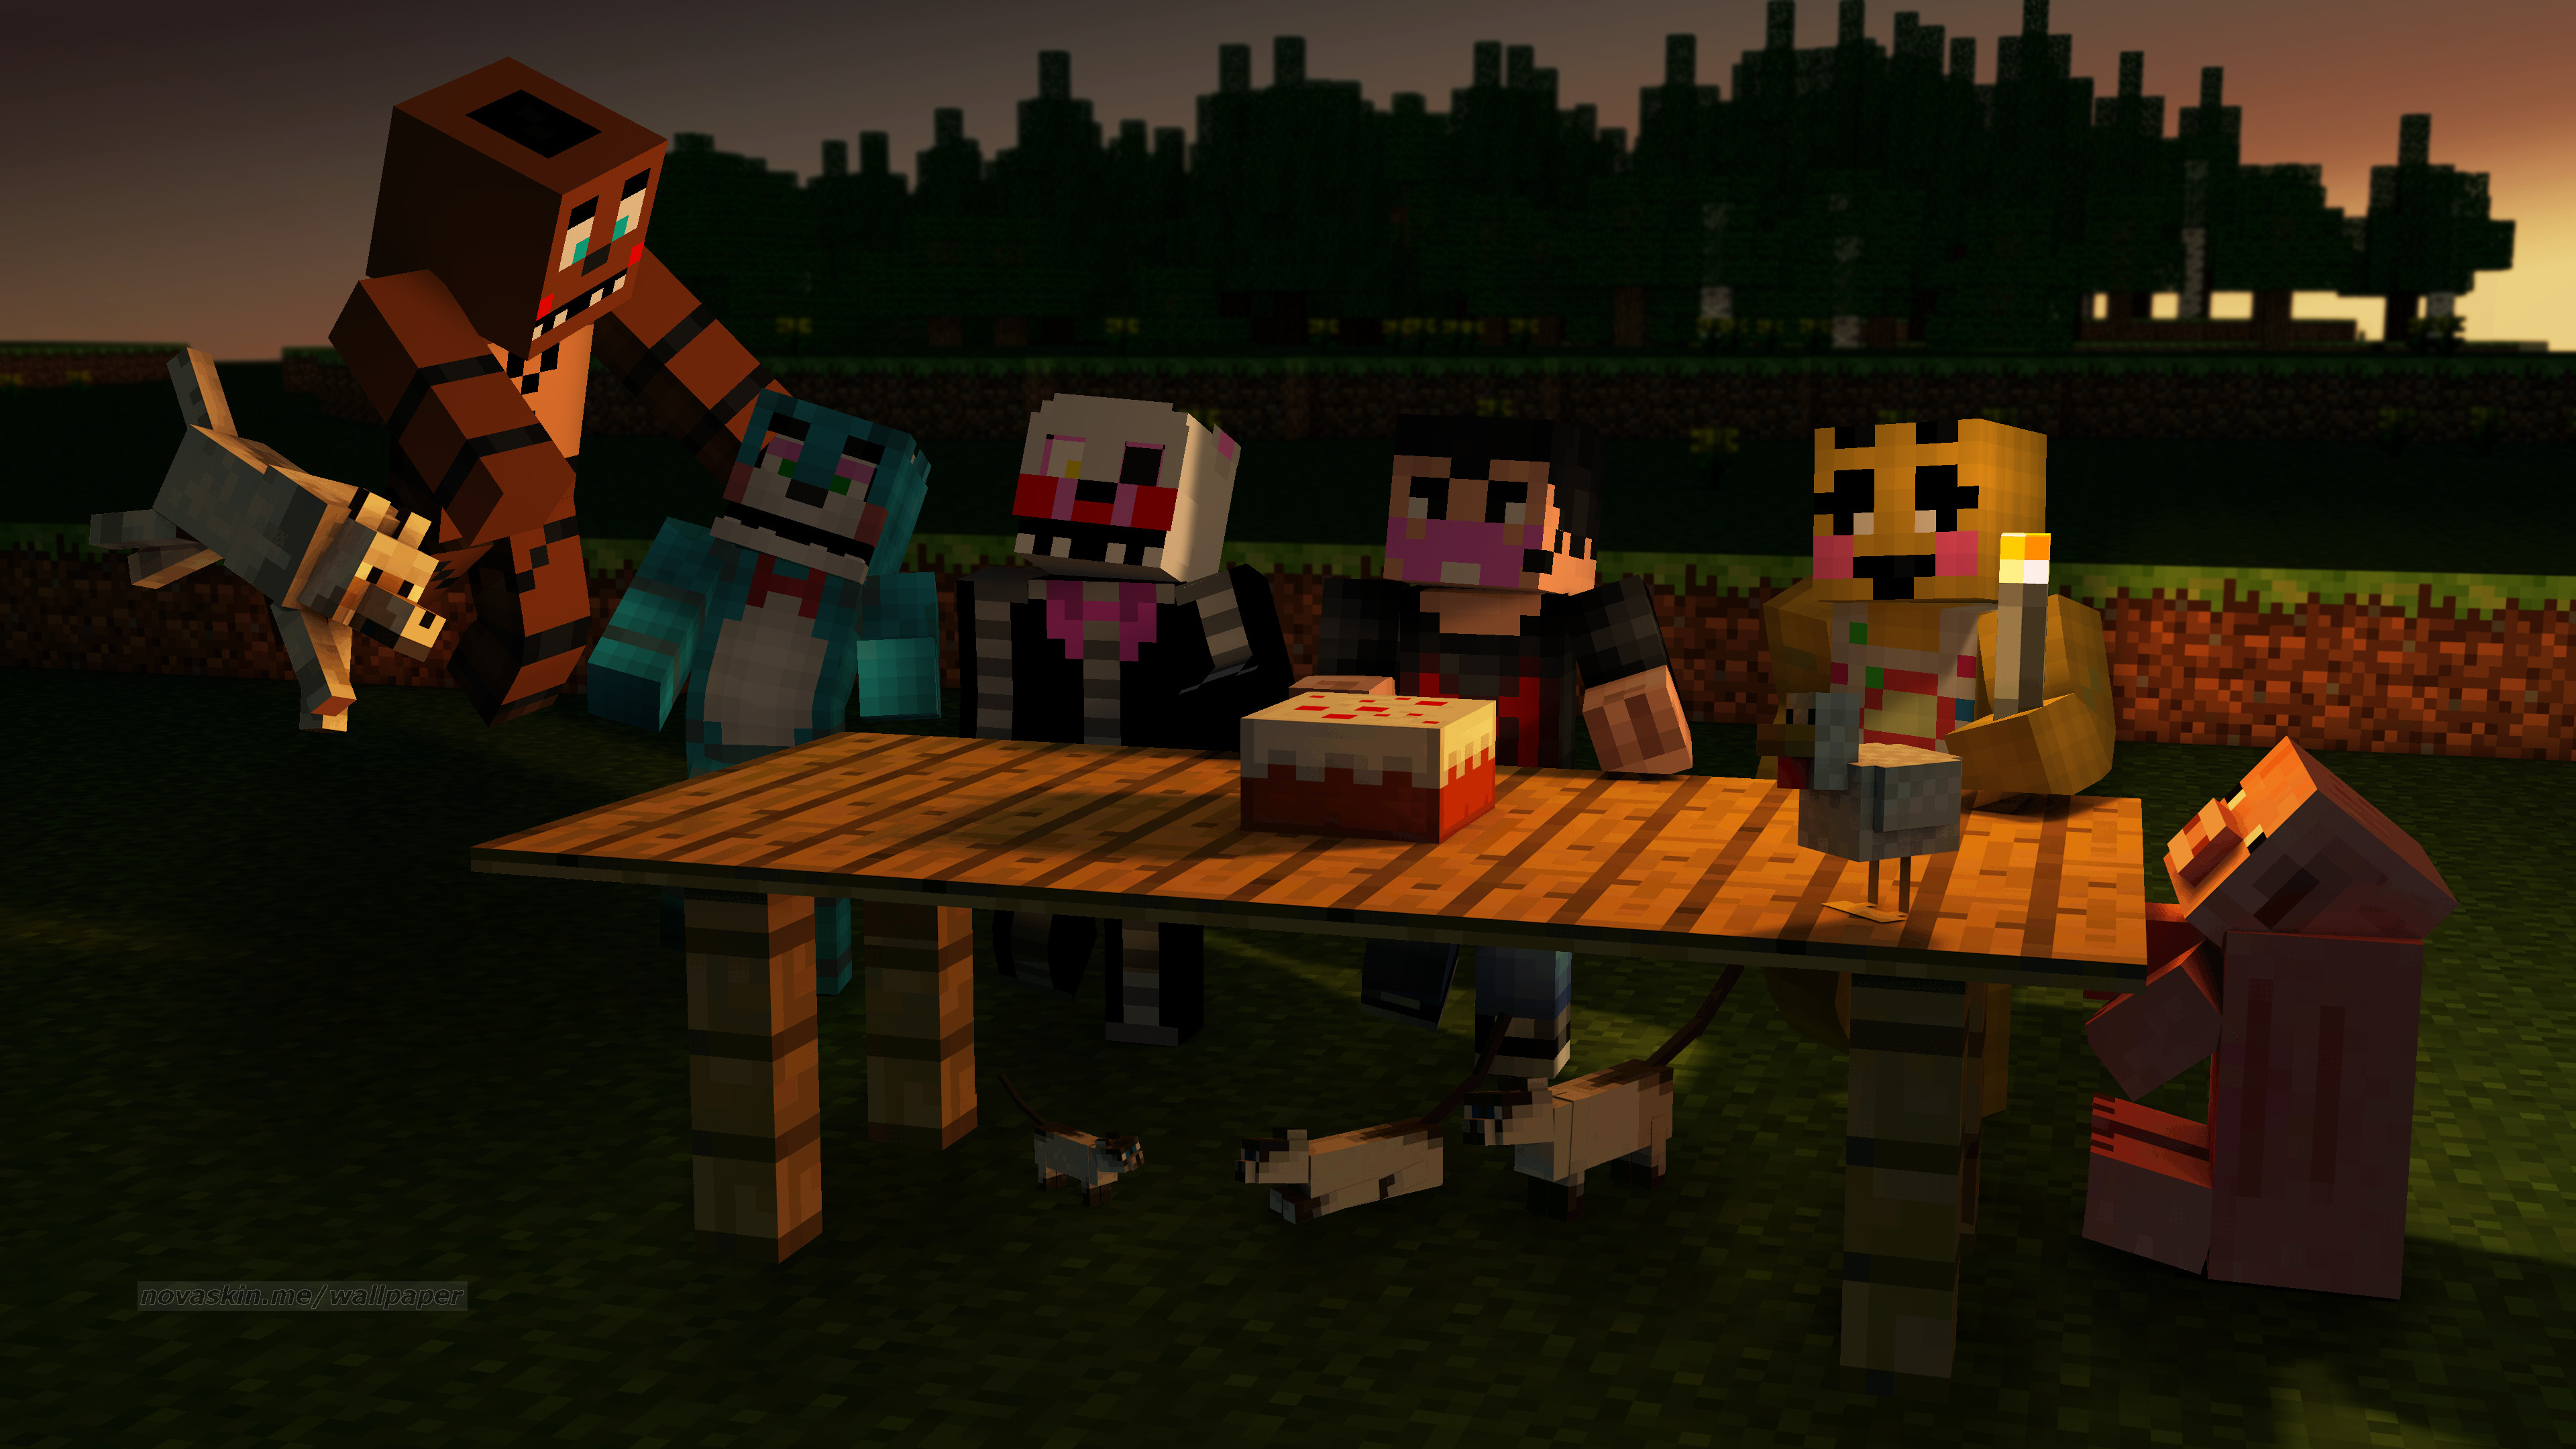 3840x2160 my wallpaper of minecraft fnaf toy animatronics corgratulating markiplier  beating 10/20 mode